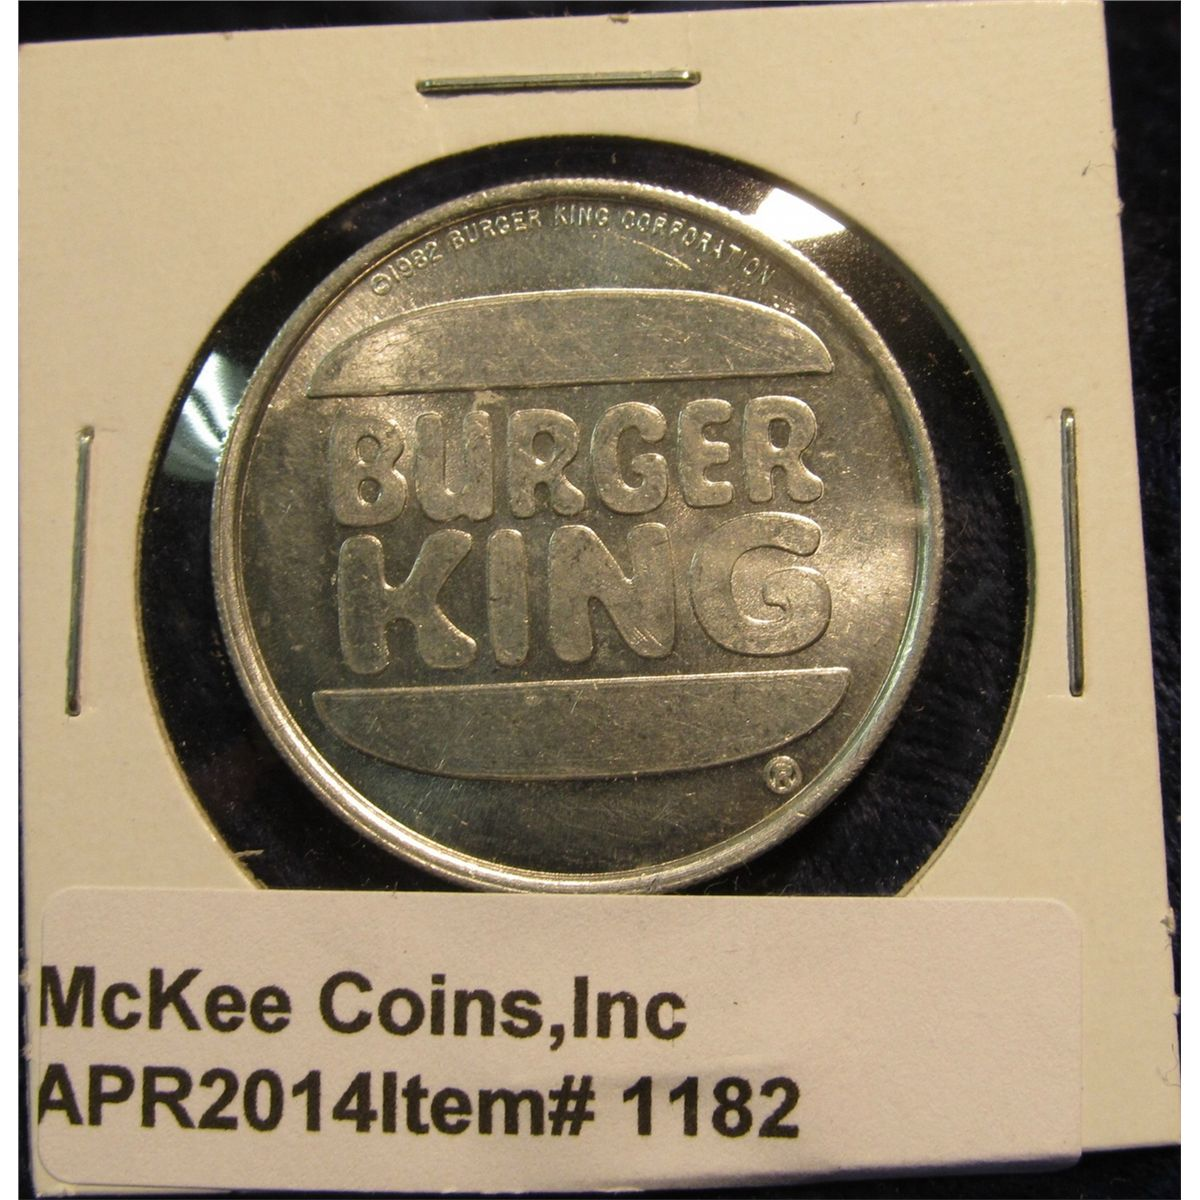 1182. 1982 Burger King Free Breakfast Beverage token – this token is a  Whopper!